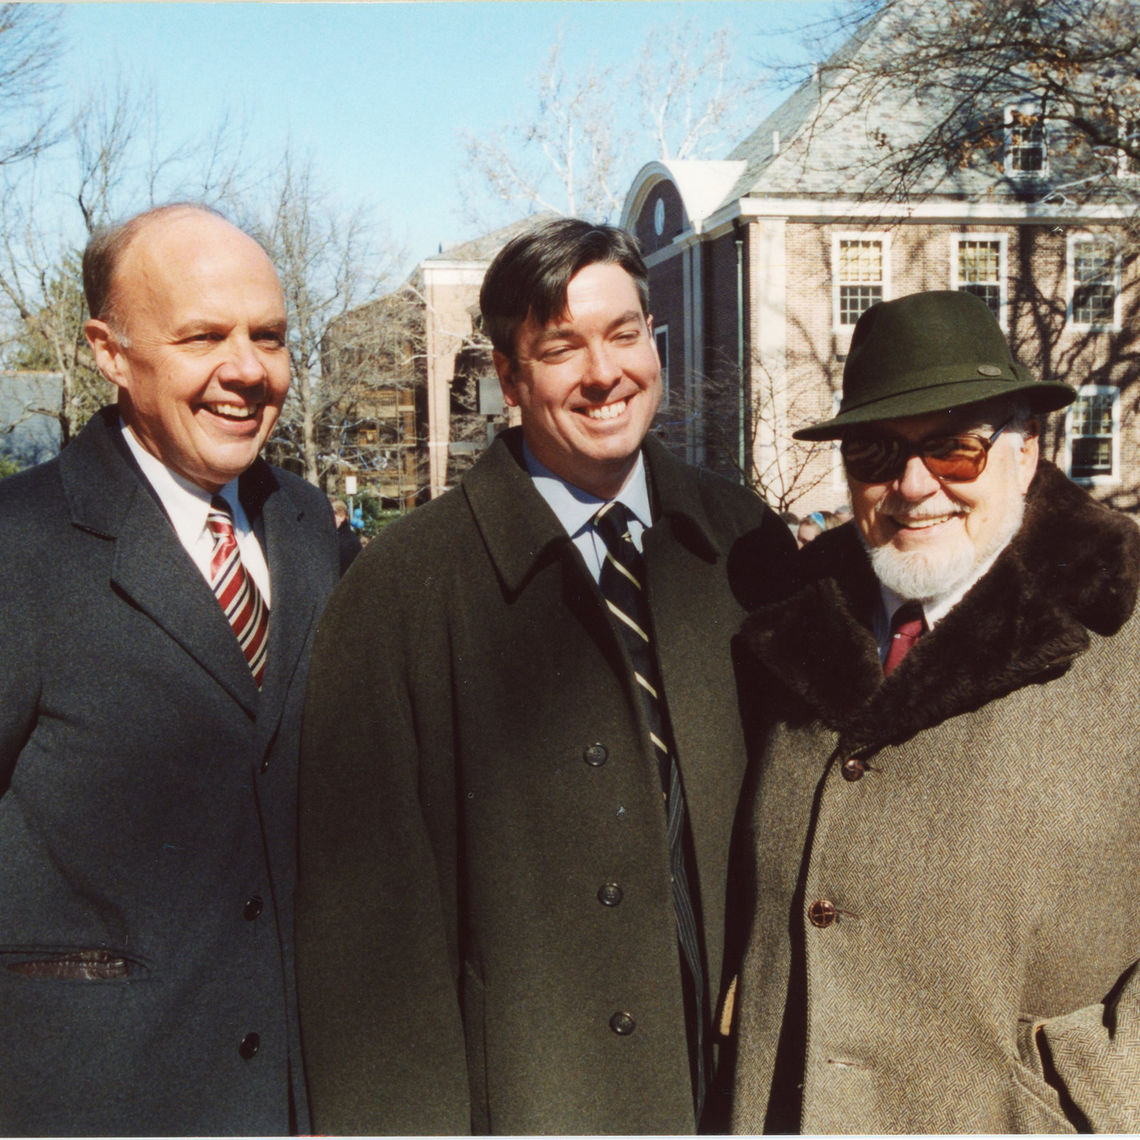 Among those welcoming John Fry to the F&M presidency in 2002 were F&M's 13th president, Richard Kneedler '65 (left), and 11th president, Keith Spalding (right). (Photo credit: J. Urdaneta).